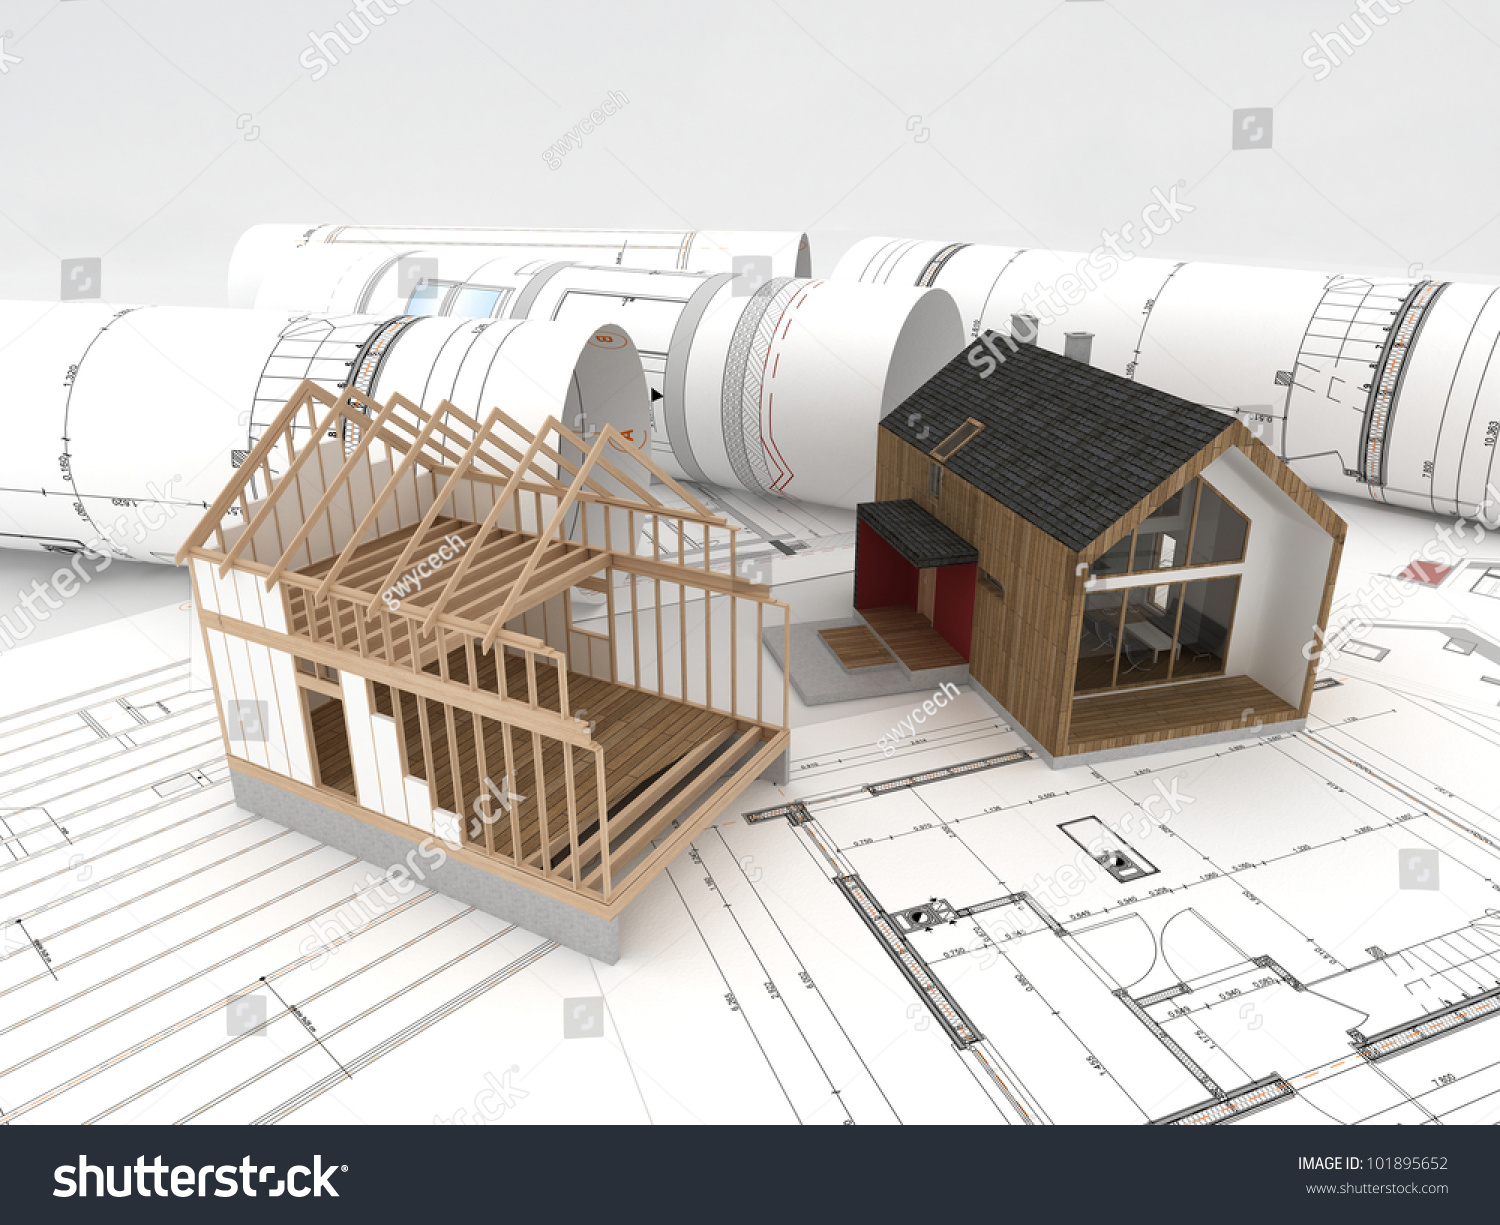 design and construction of wooden house architects technical drawings and design